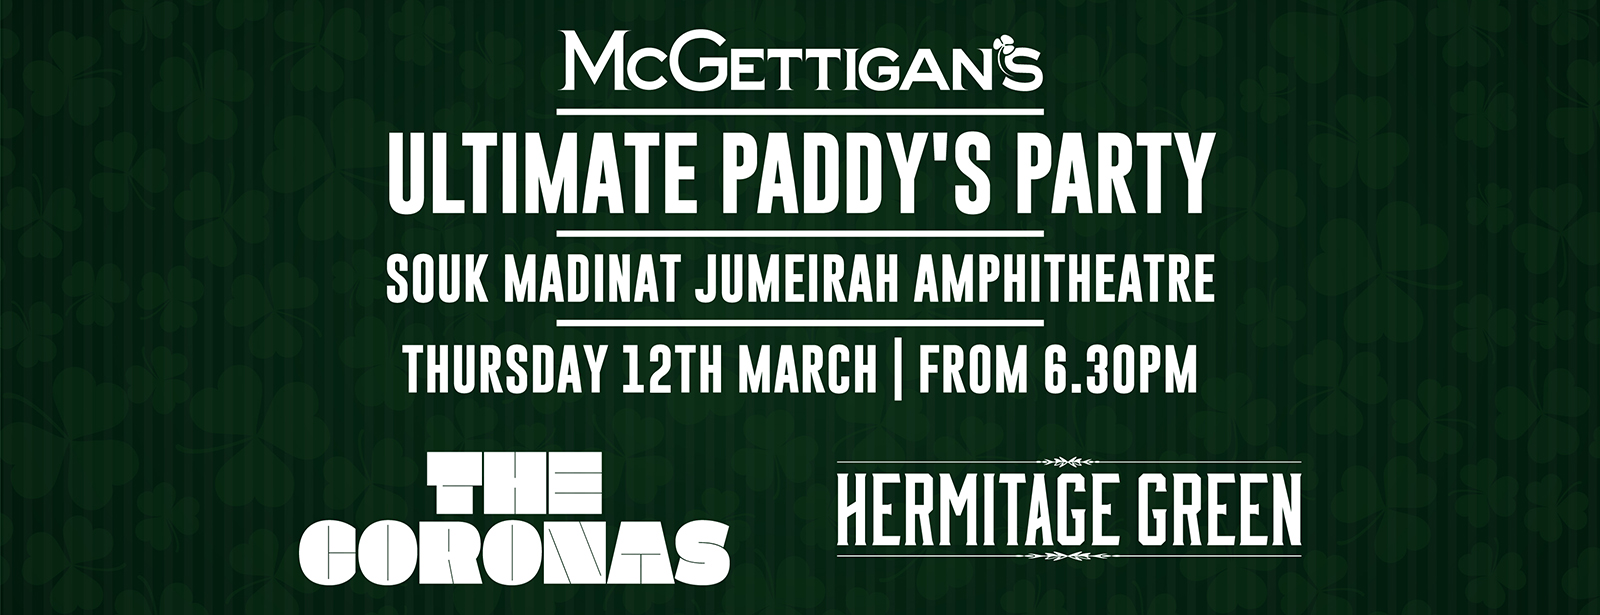 McGettigan's The Ultimate Paddy's Party 2020 w/ The Coronas and Hermitage Green